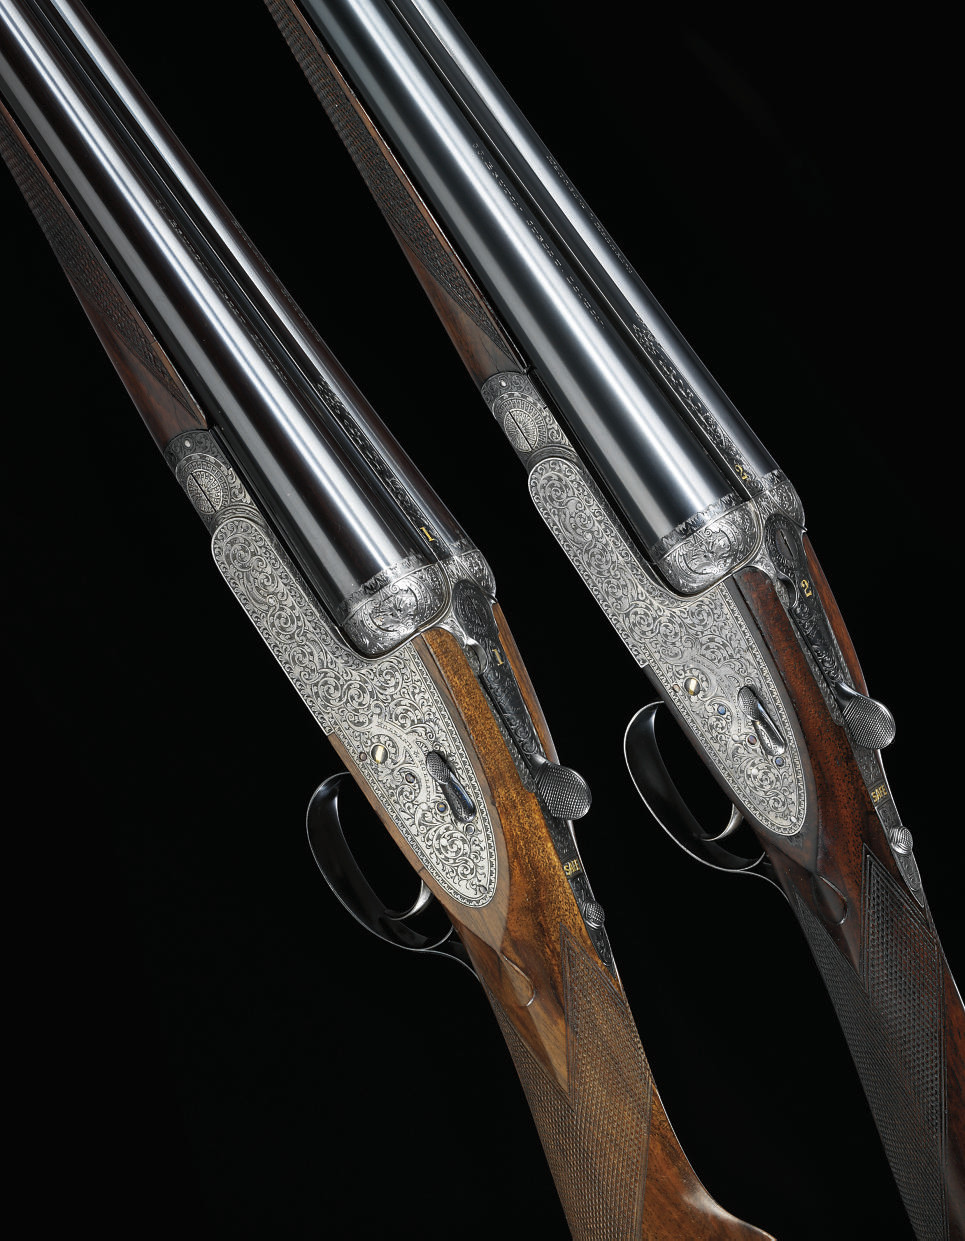 A PAIR OF 20-BORE 'ROYAL' MODEL SIDELOCK EJECTOR GUNS BY HOLLAND & HOLLAND, NOS. 27017 & 27902